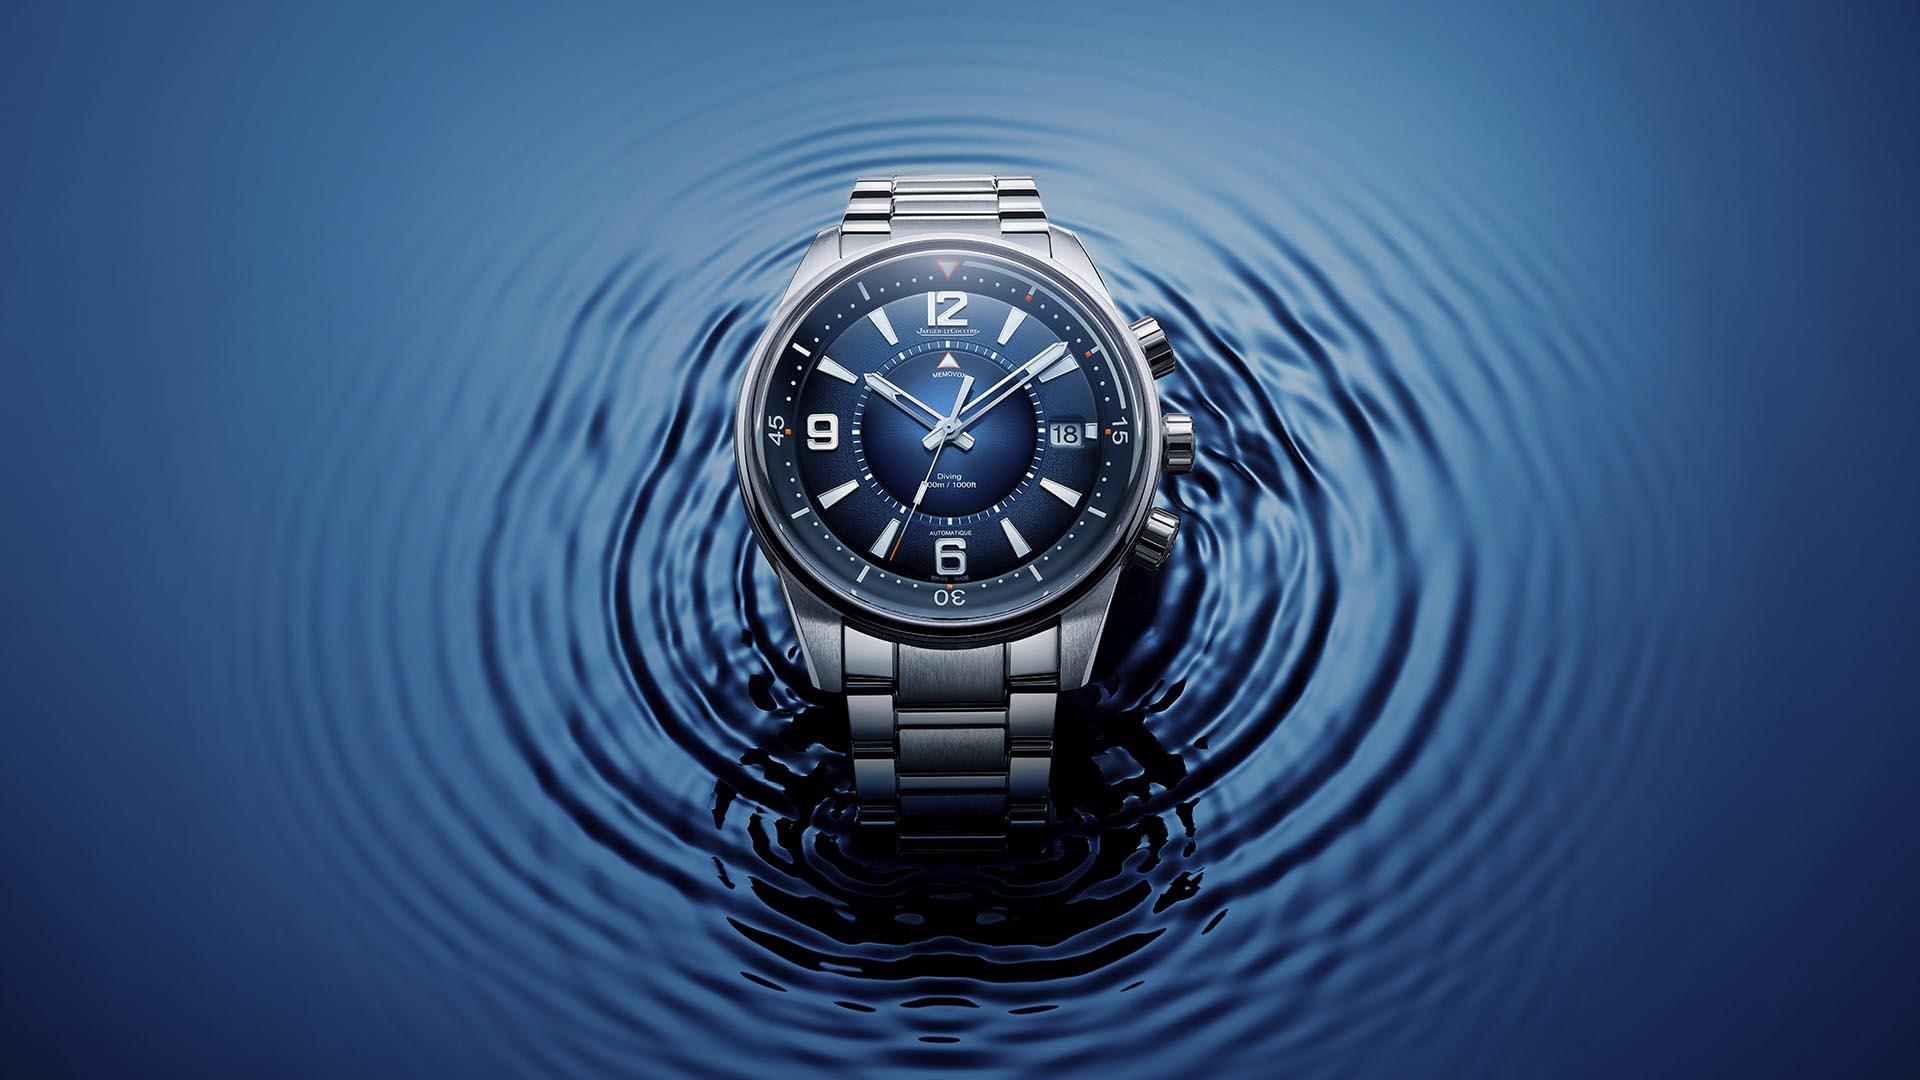 Jaeger-LeCoultre Polaris Mariner Collection